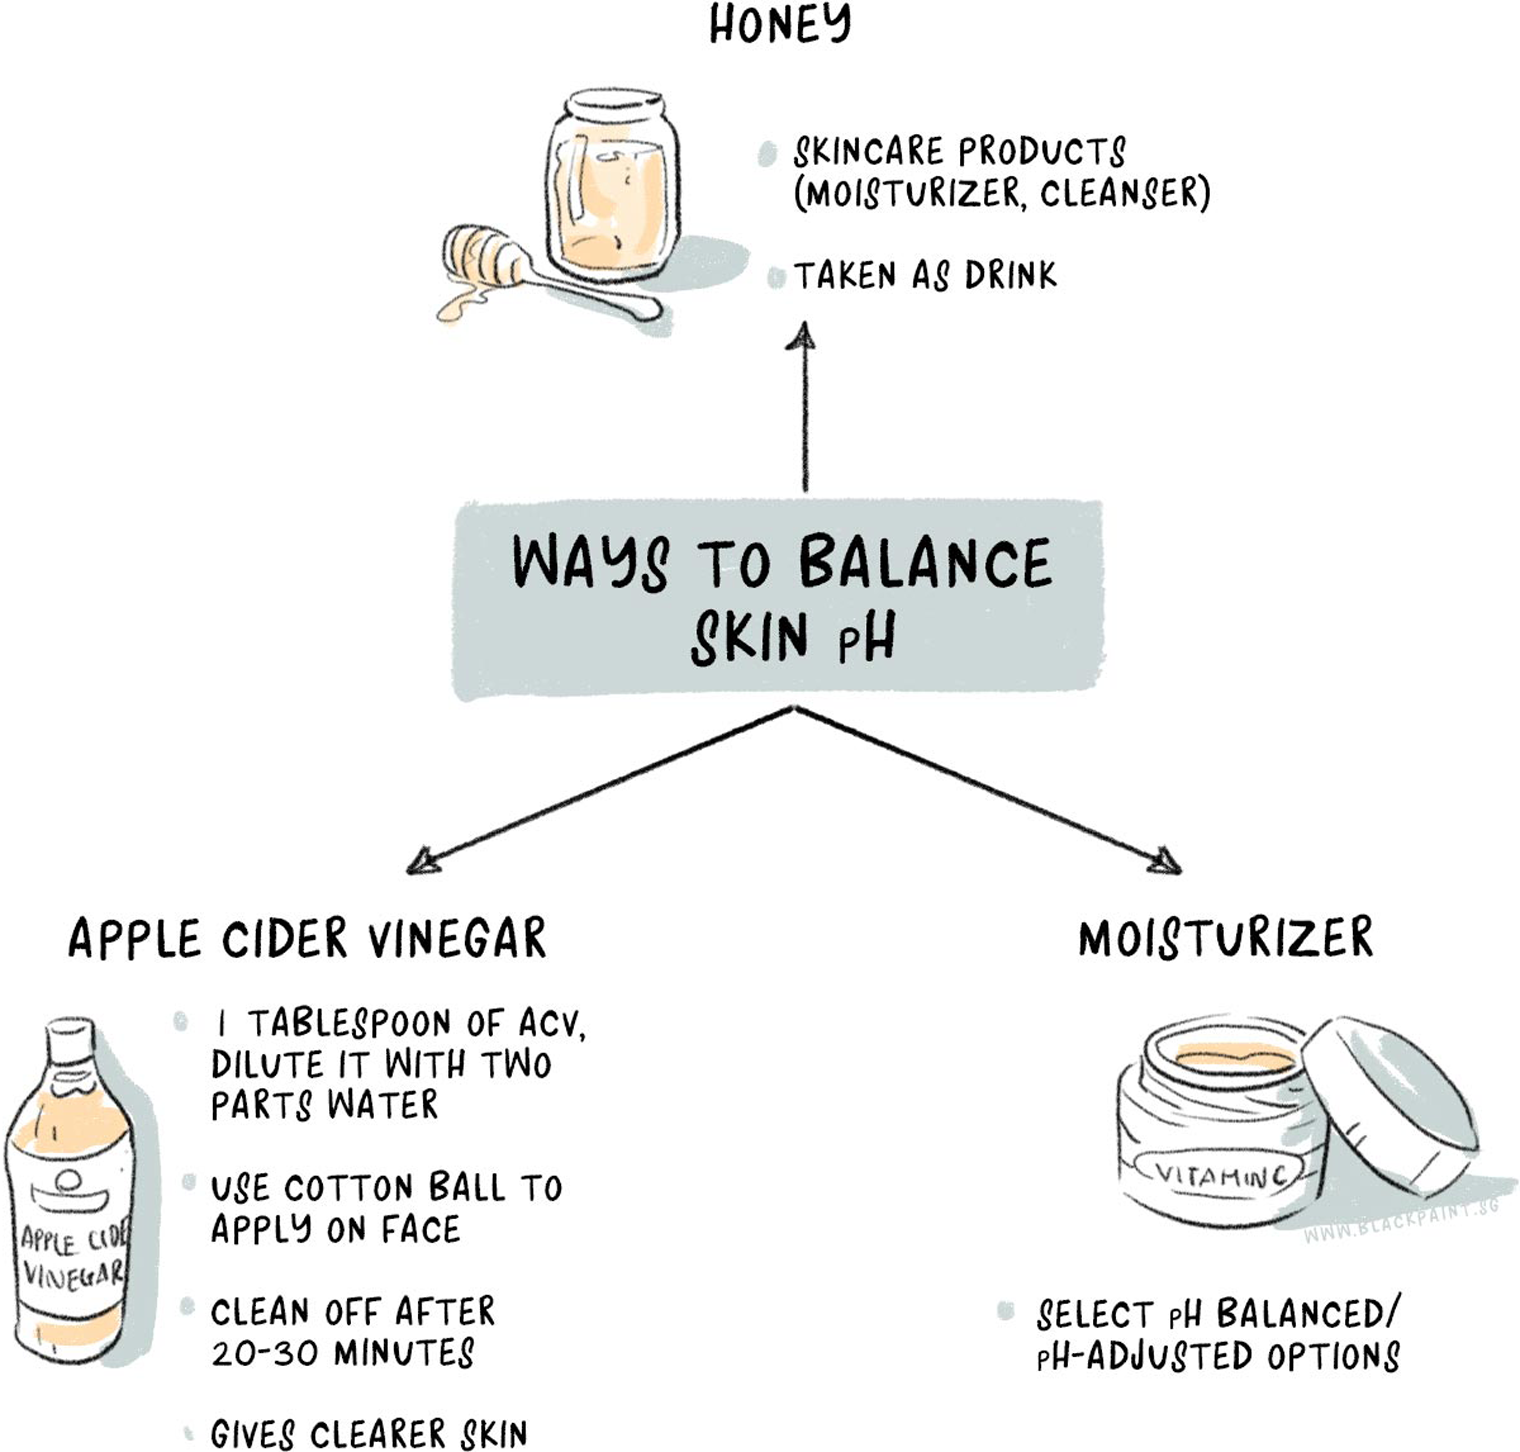 Use of food and skicnare products can help have a balance of skin pH.